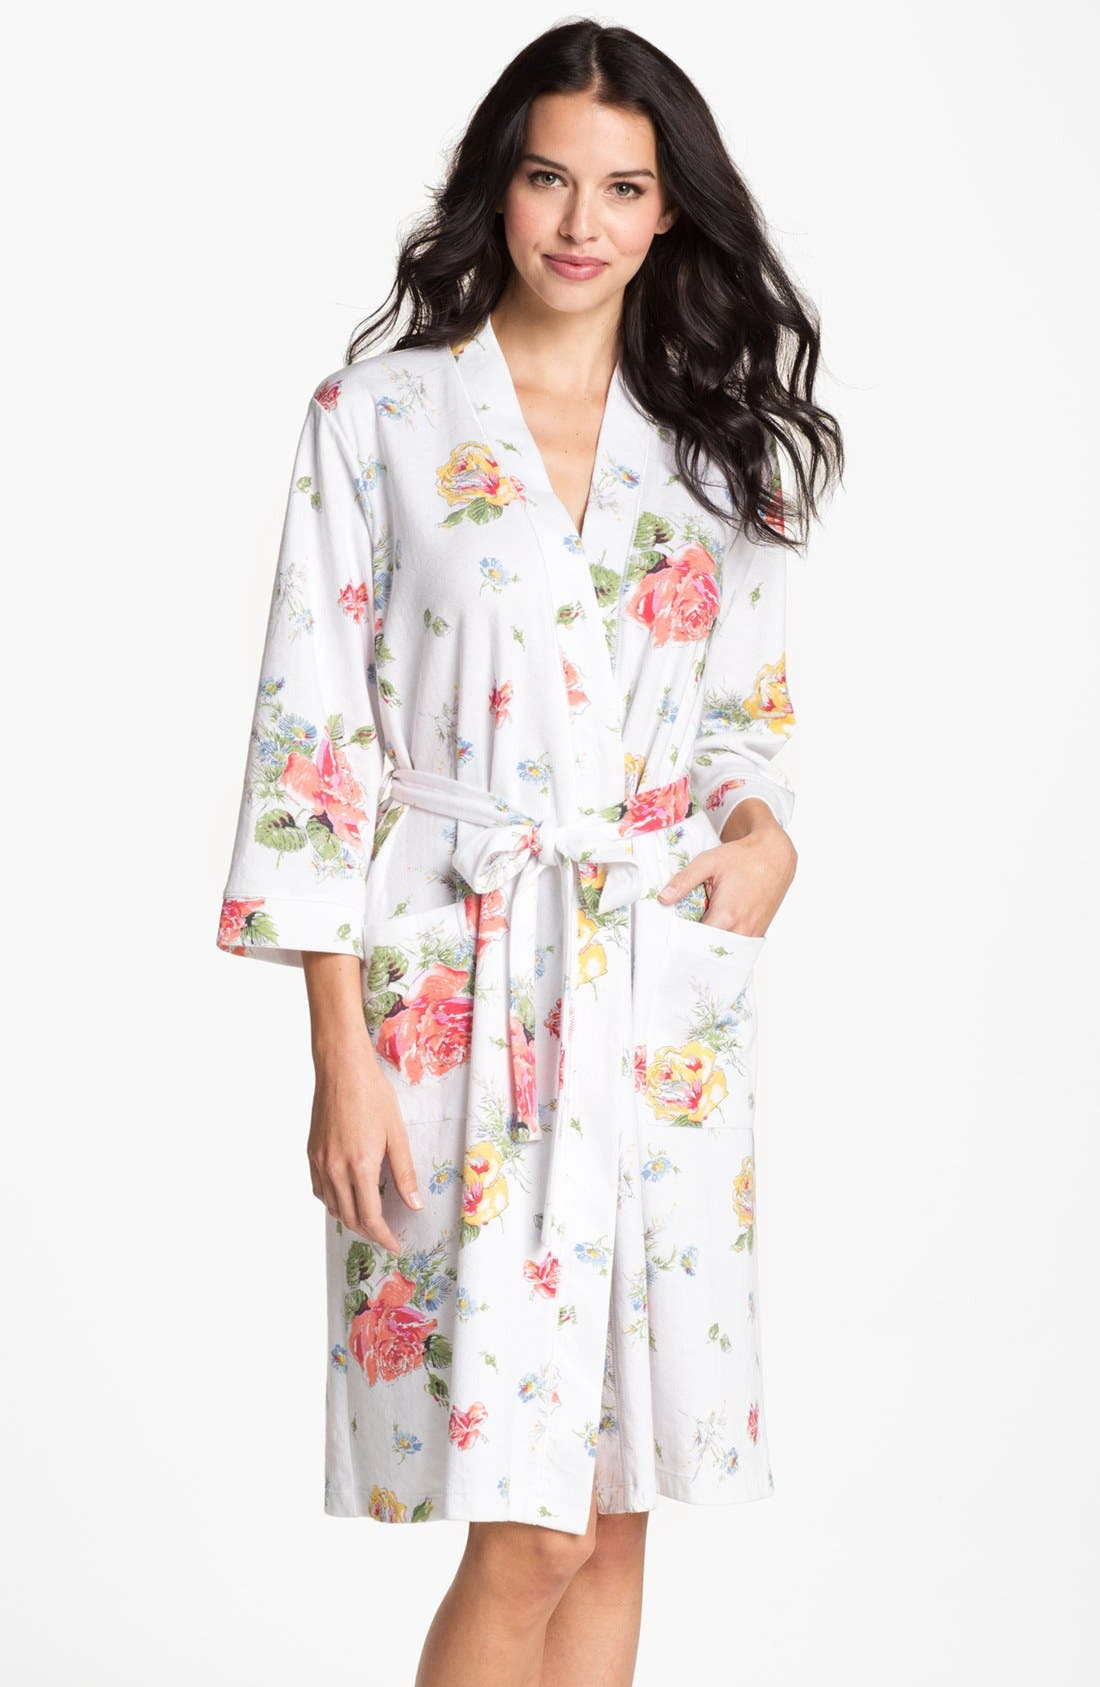 Alternate Image 1 Selected - Carole Hochman Designs Floral Print Robe